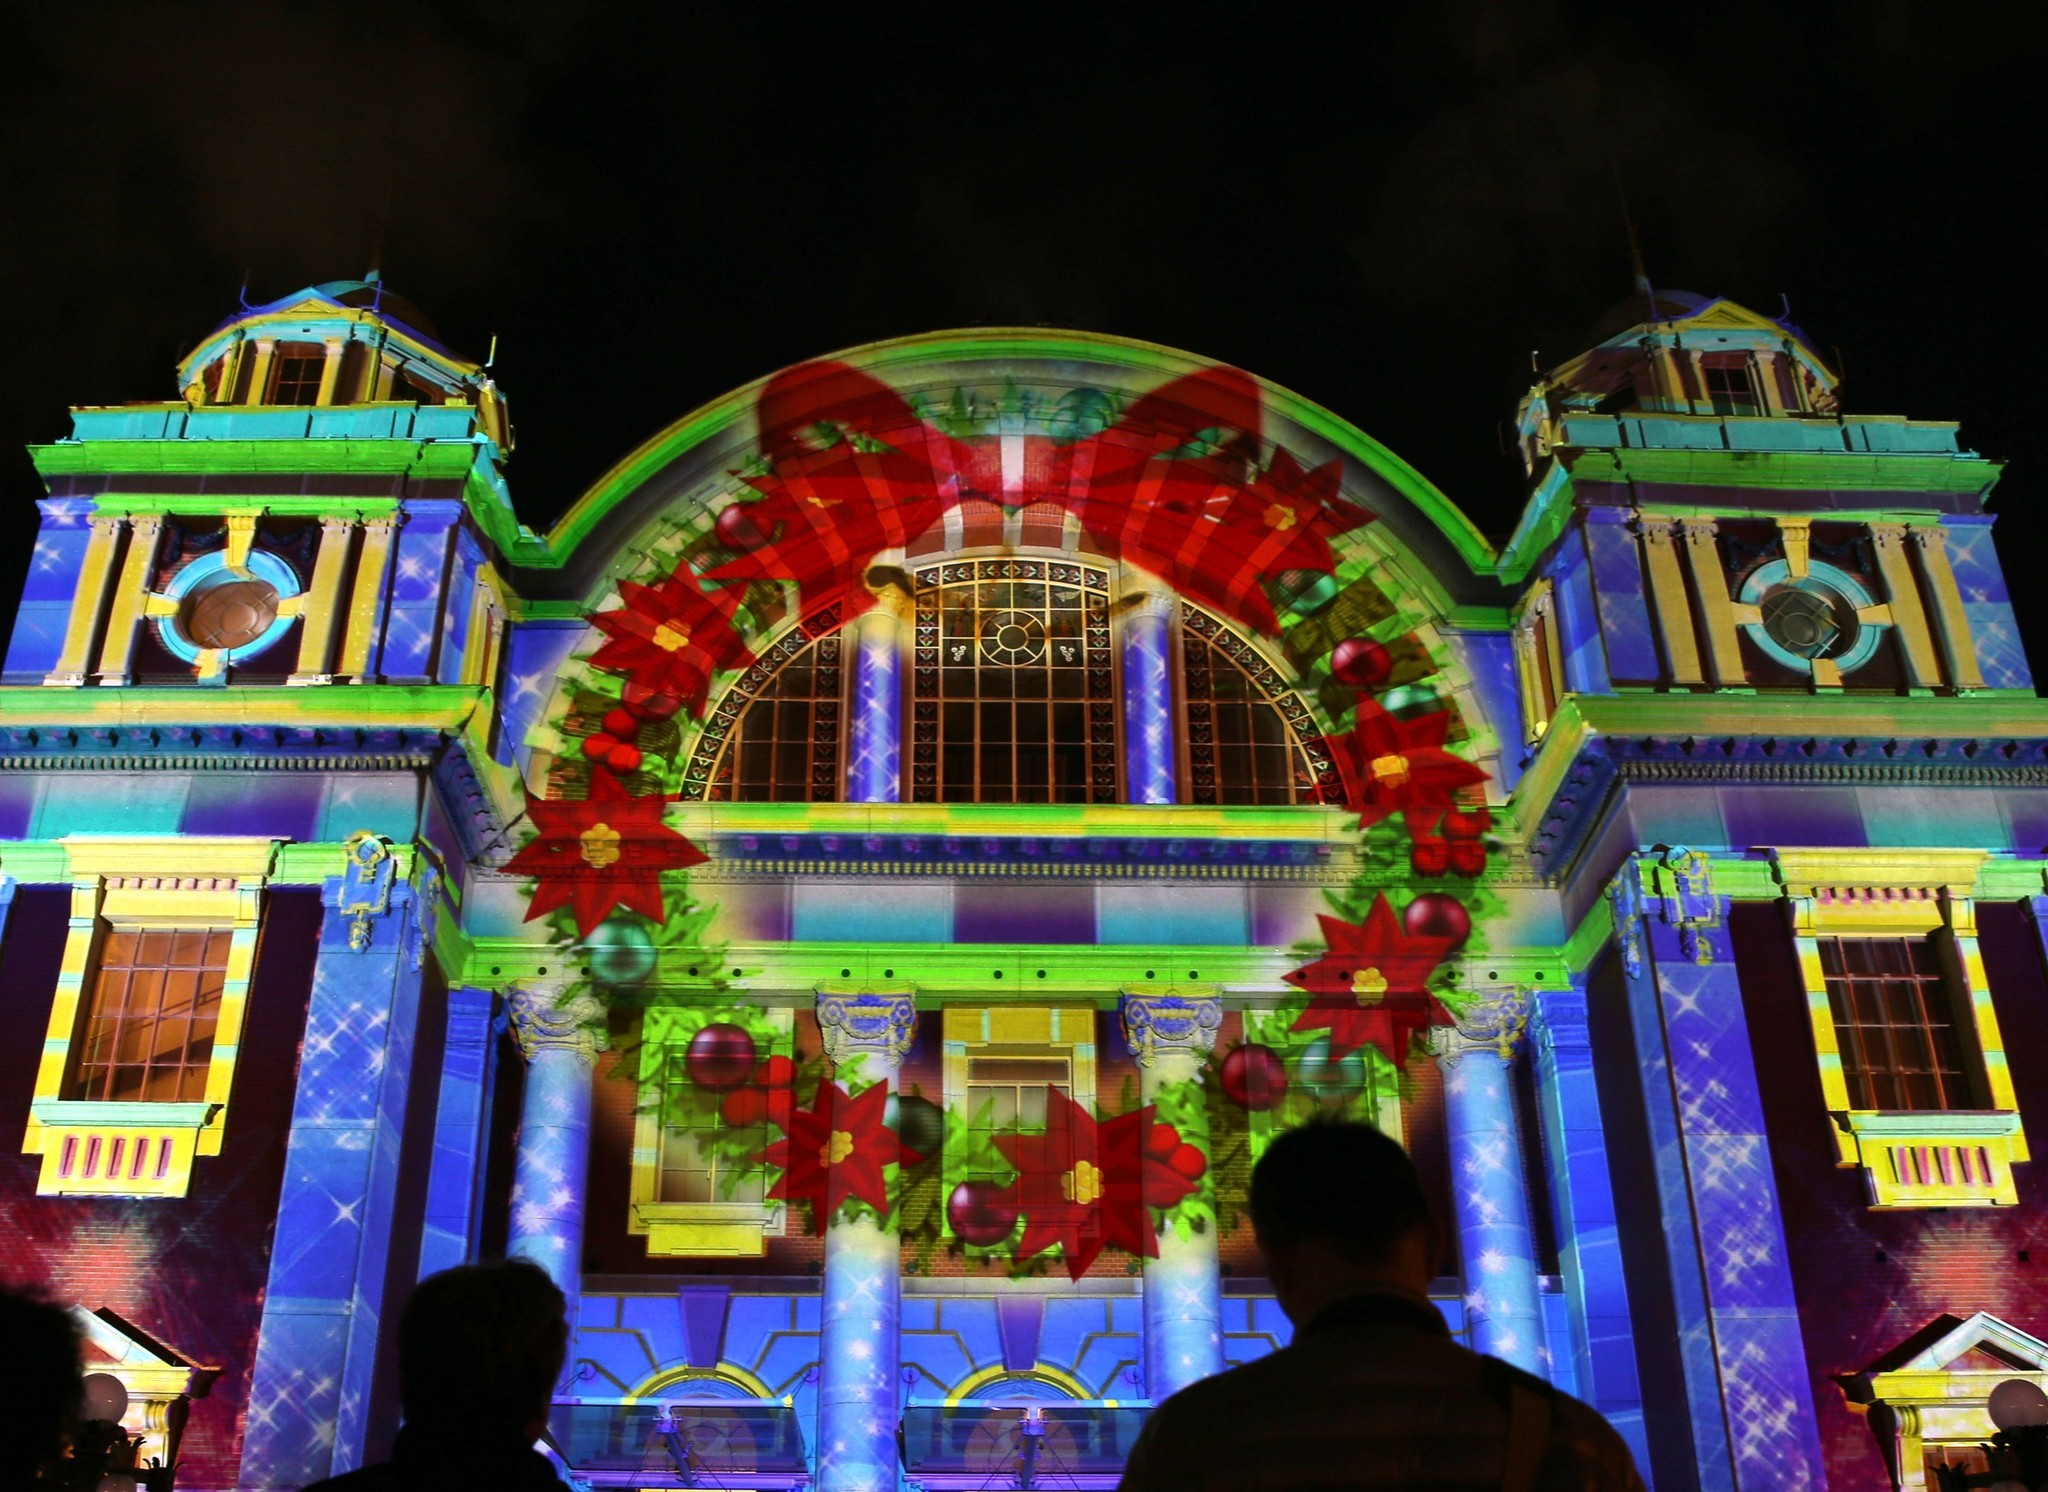 Pictures: Holiday lights from around the globe - Osaka Feast Of Light 2013